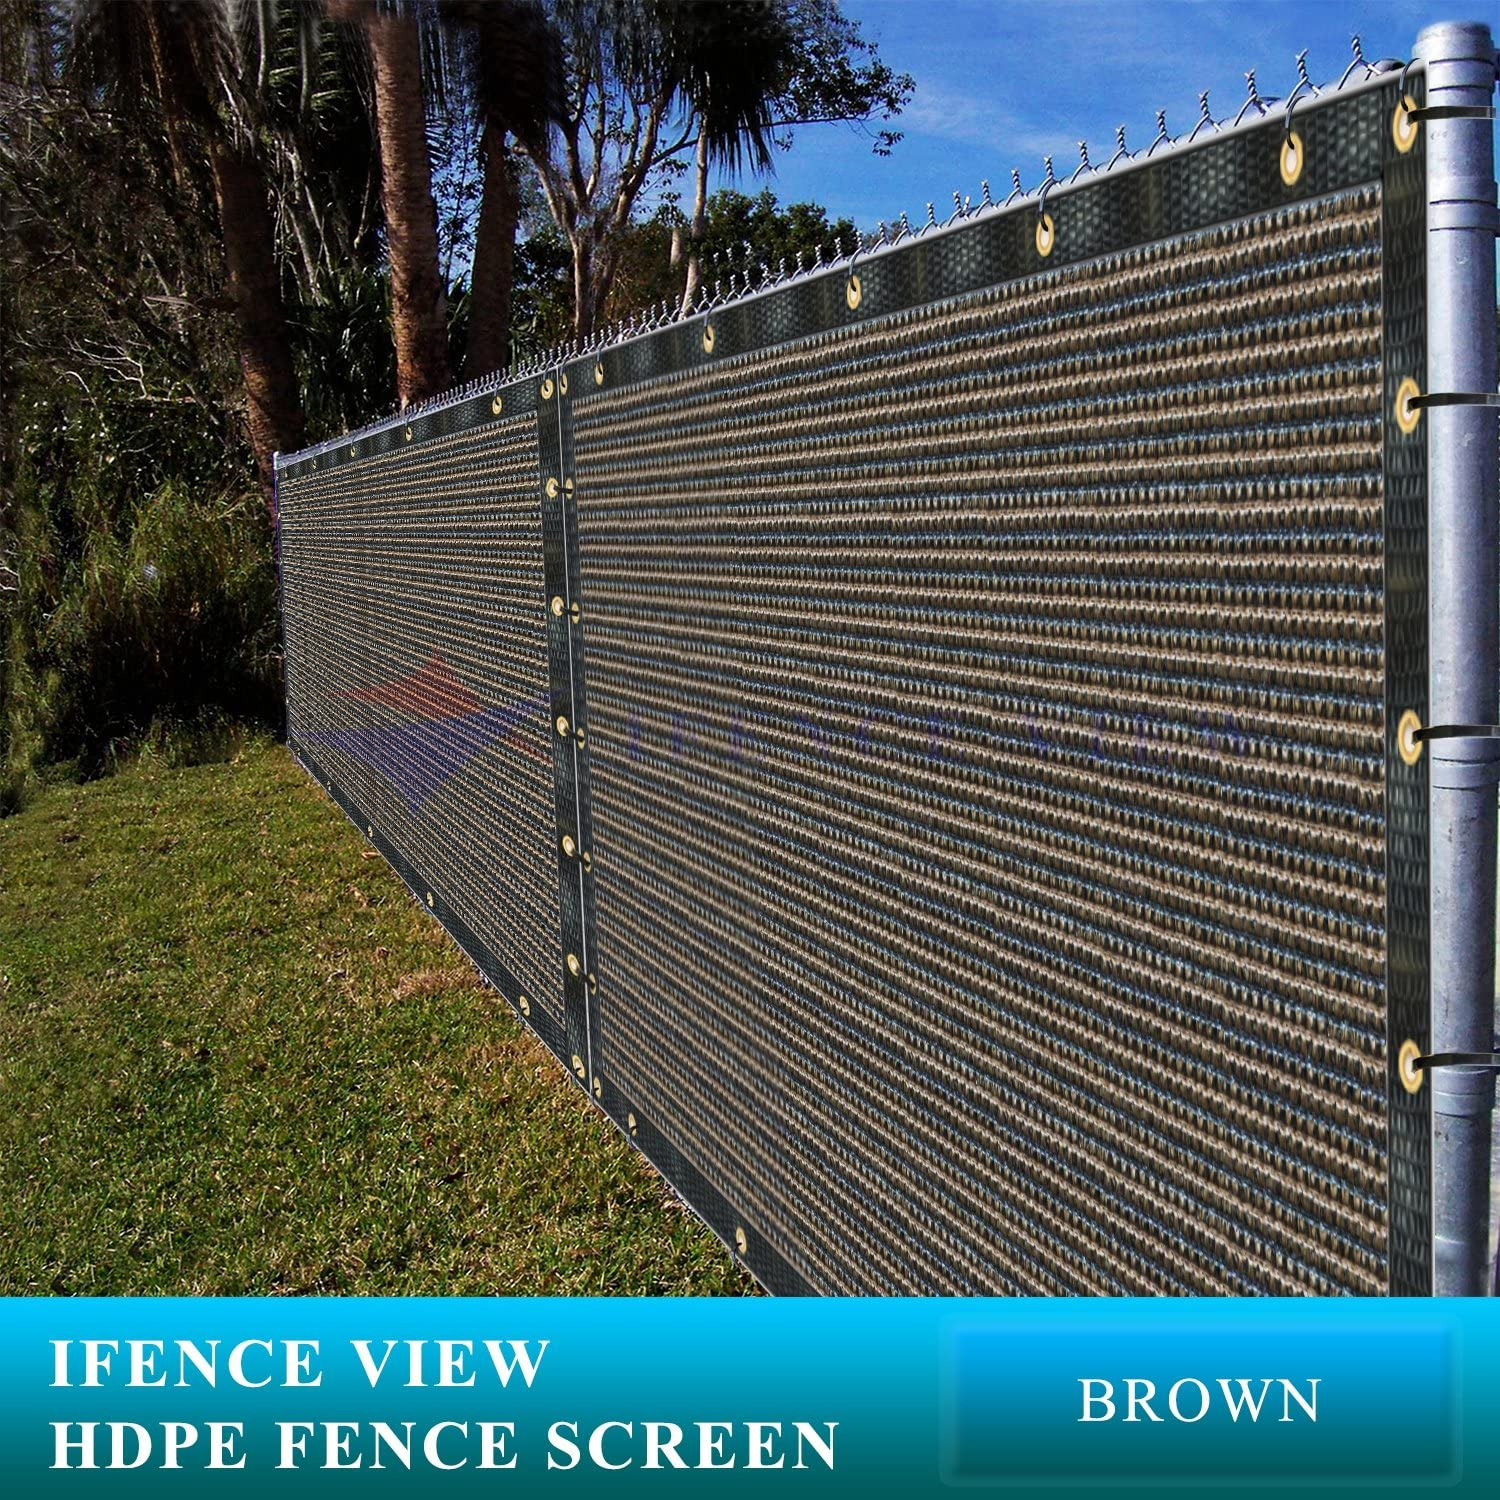 Ifenceview 3 x3 to 3 x50 Brown Shade Cloth Fence Privacy Screen Fabric Mesh Net for Construction Site, Yard, Driveway, Garden, Canopy, Awning 160 GSM UV Protection 3 x8